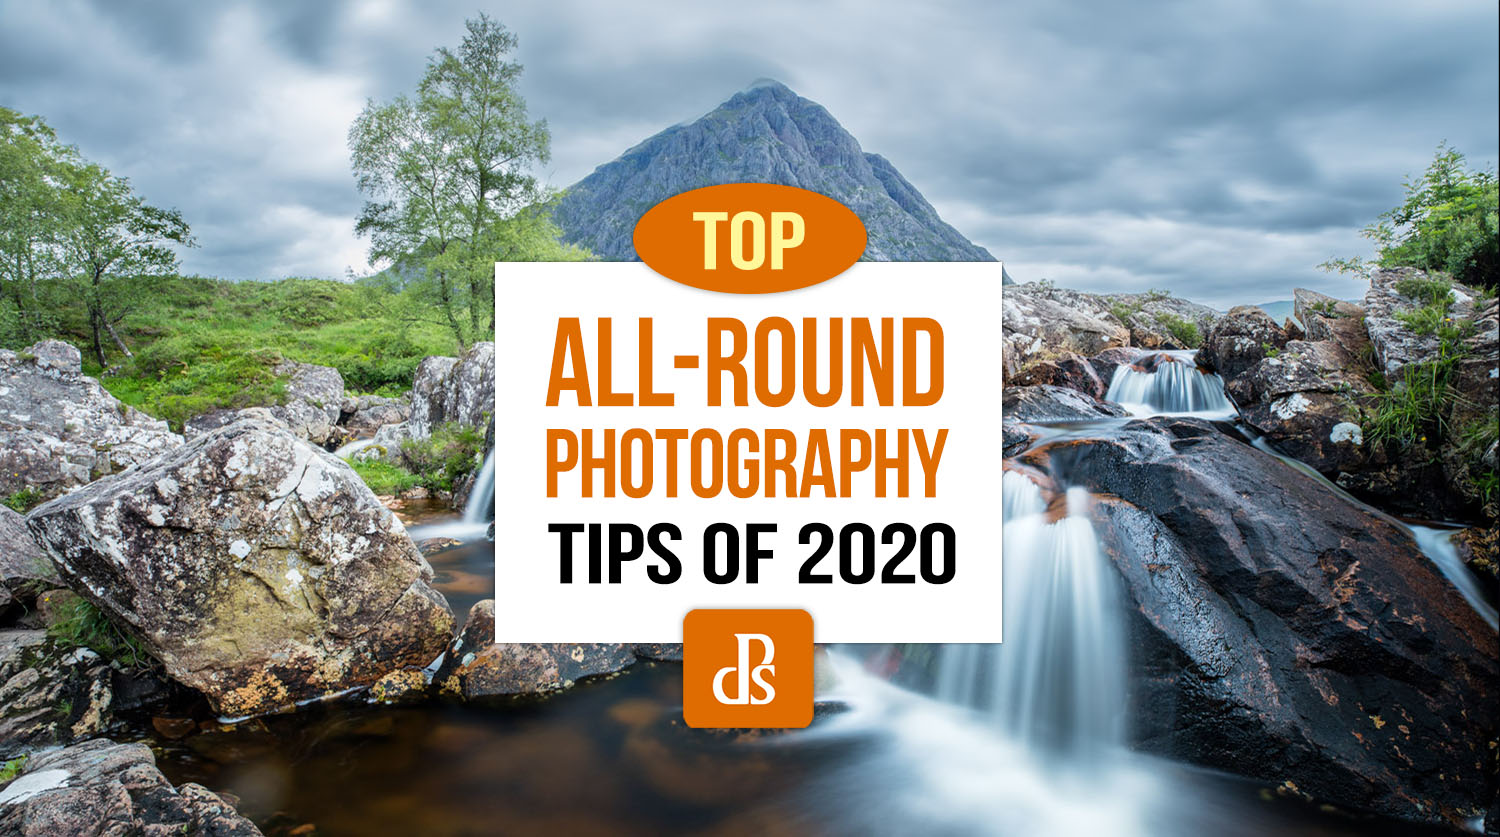 https://i1.wp.com/digital-photography-school.com/wp-content/uploads/2020/12/dps-top-photography-tips-2020-1.jpg?resize=1500%2C837&ssl=1